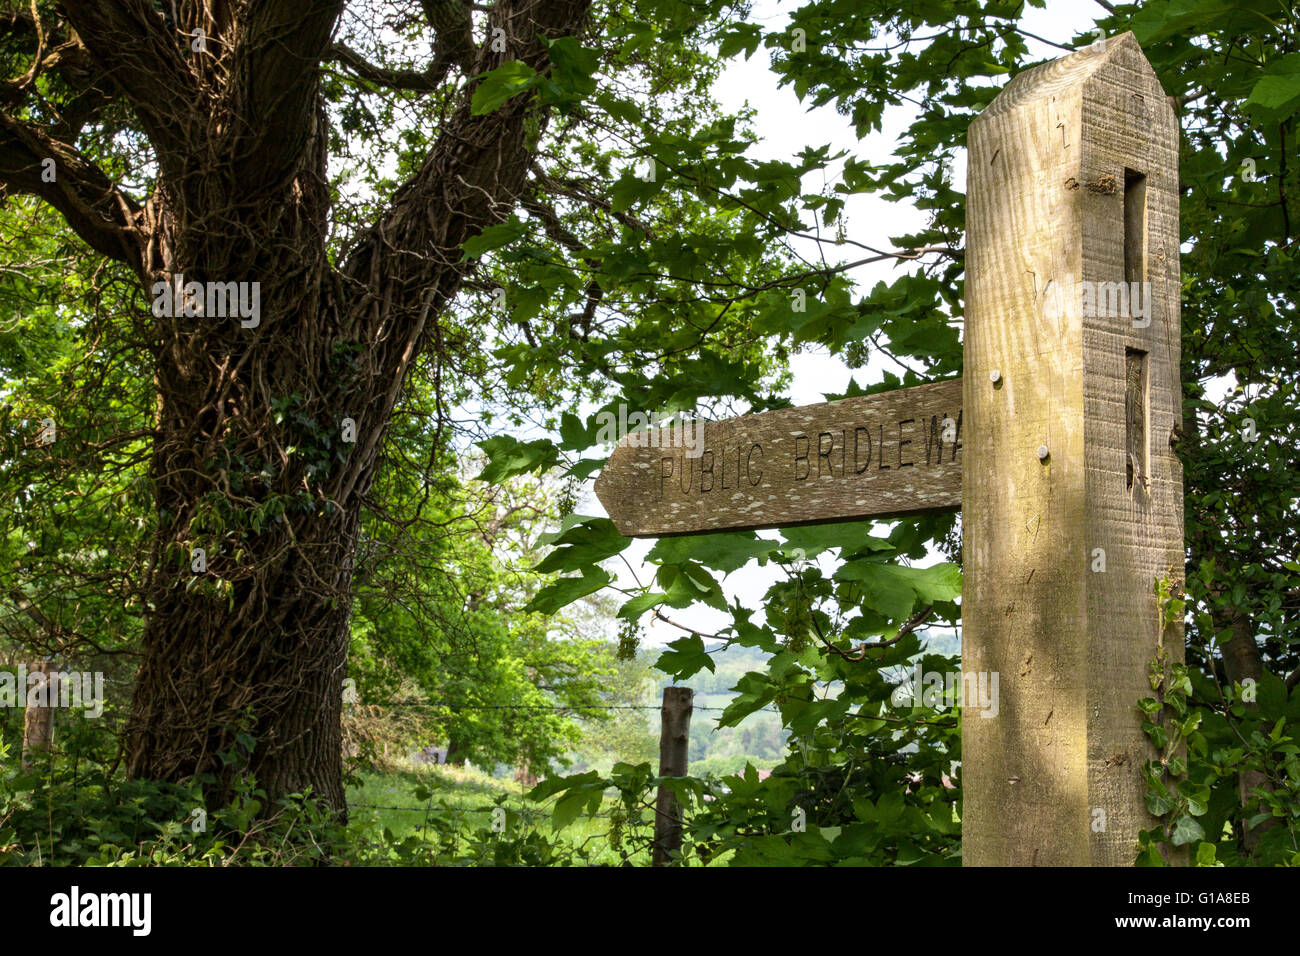 A public bridleway sign in the English Countryside - Stock Image